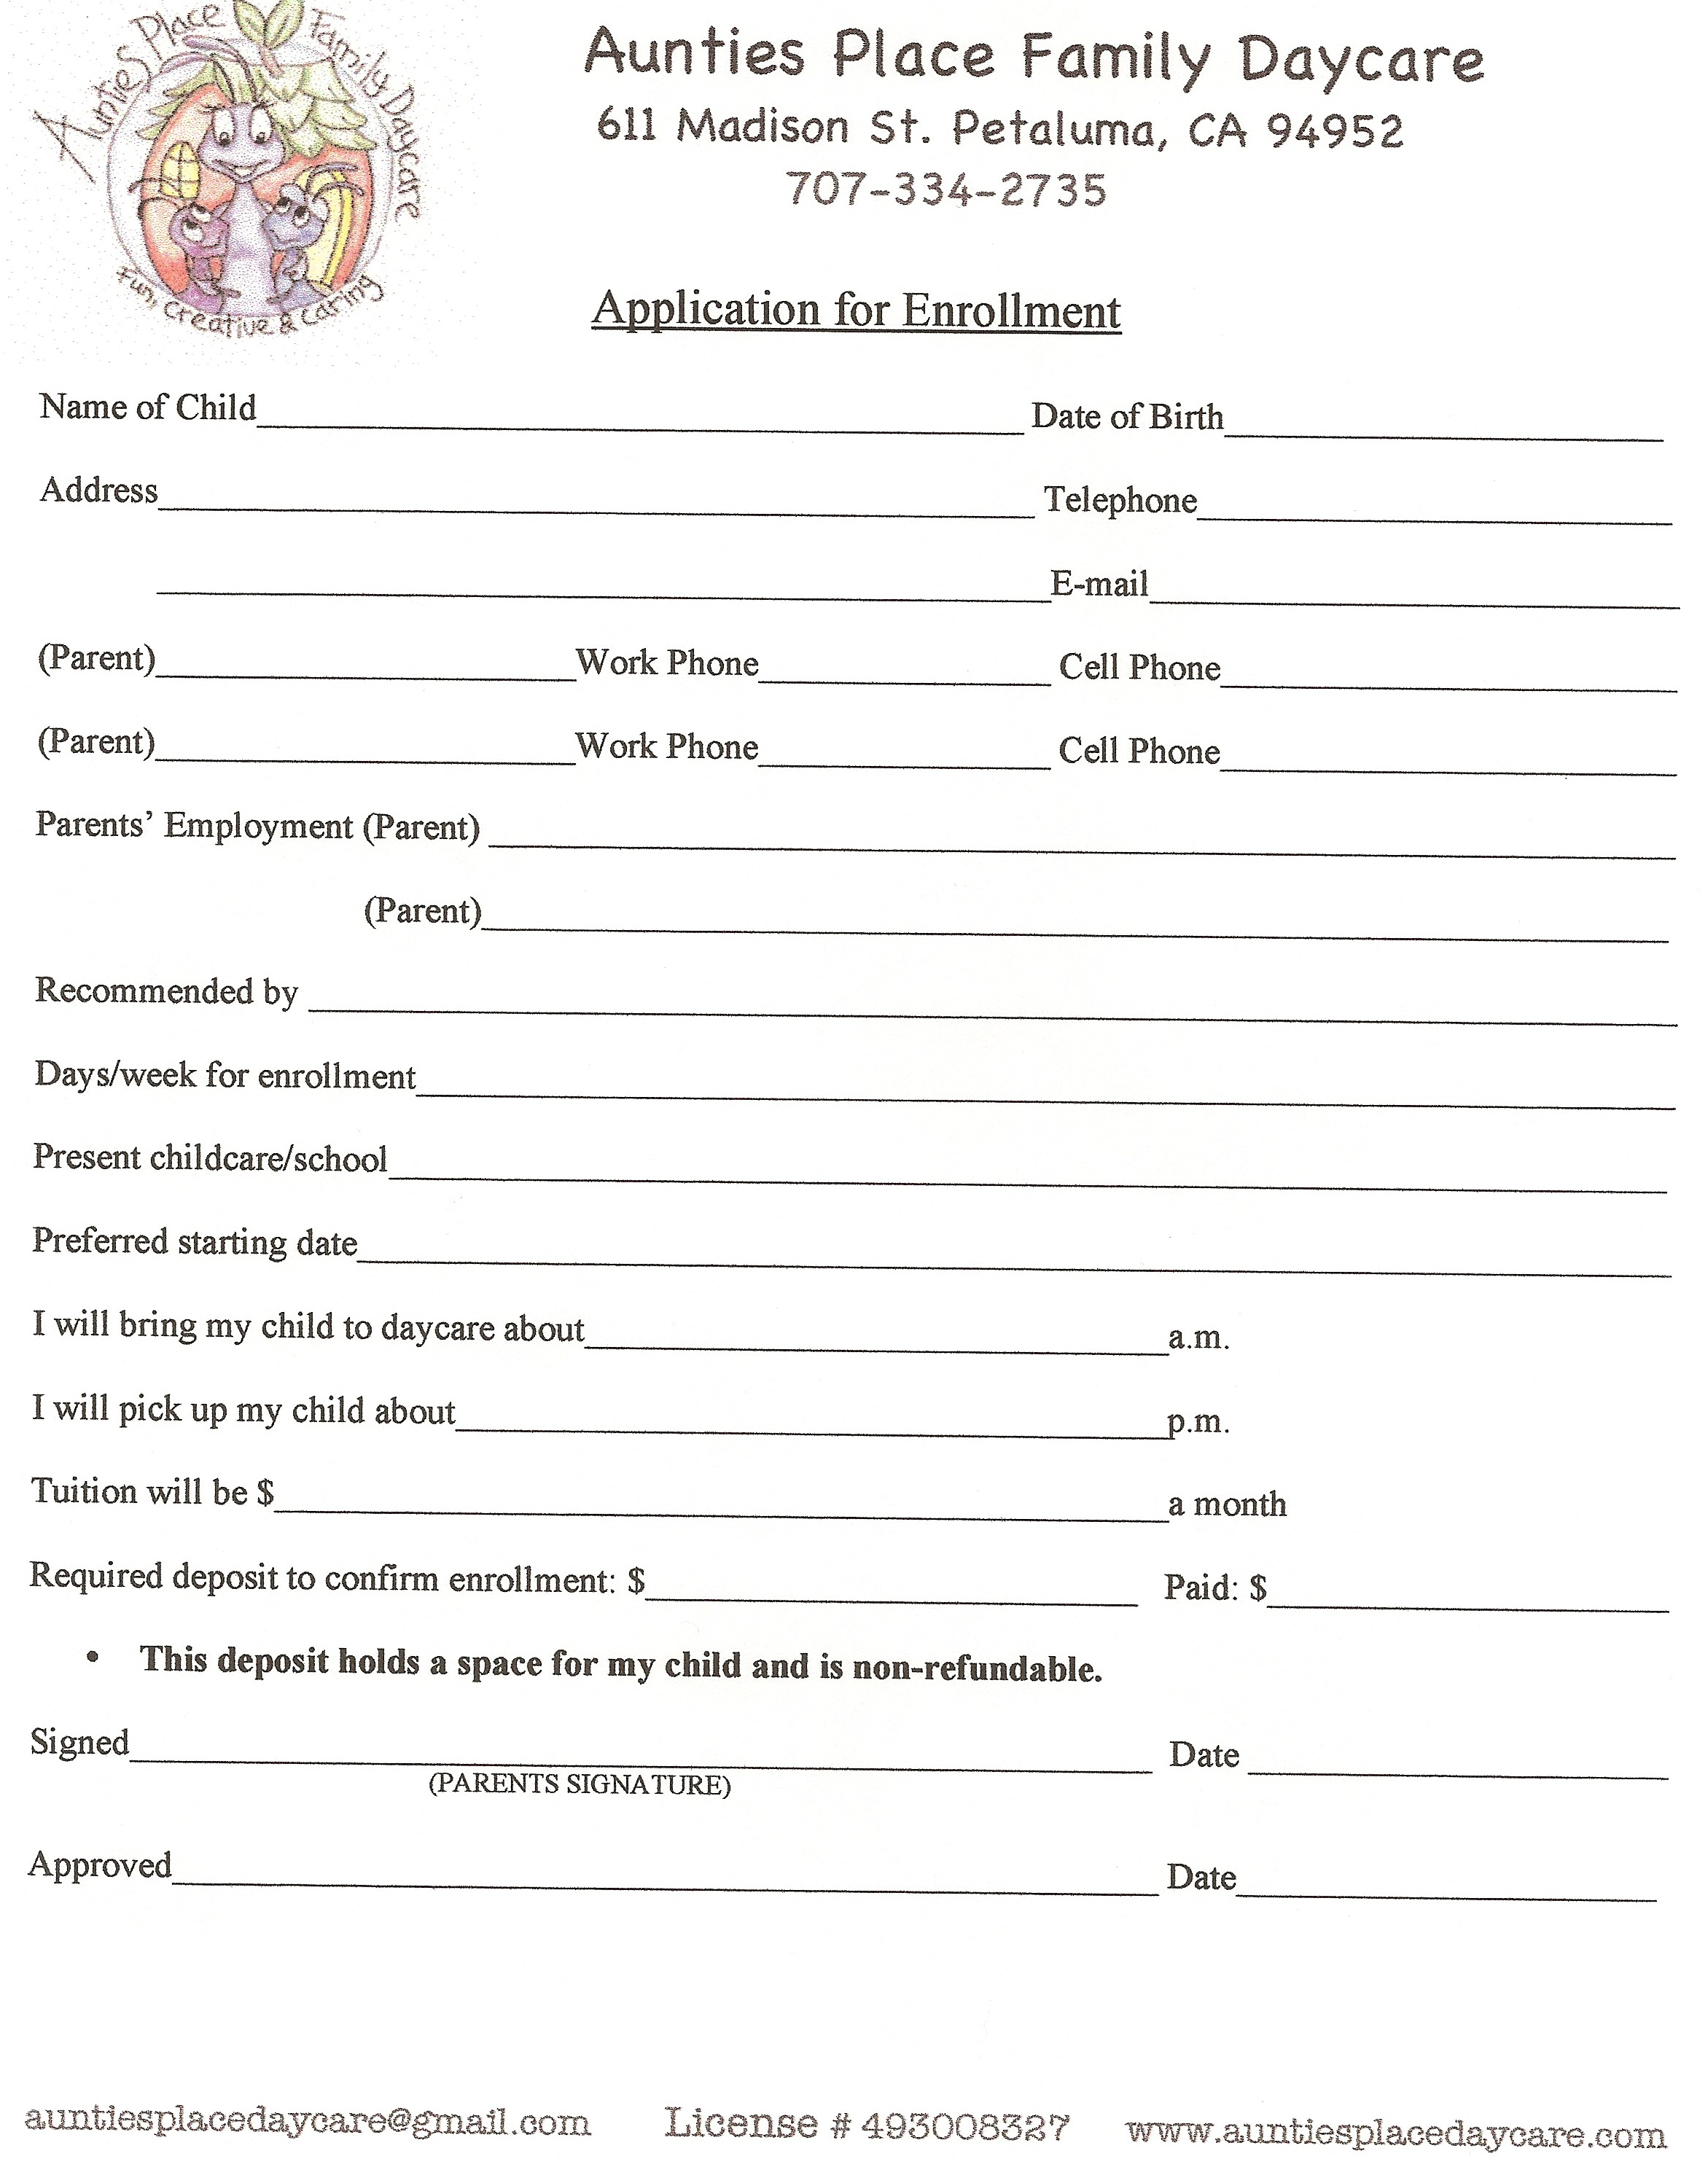 our forms for a safe day care